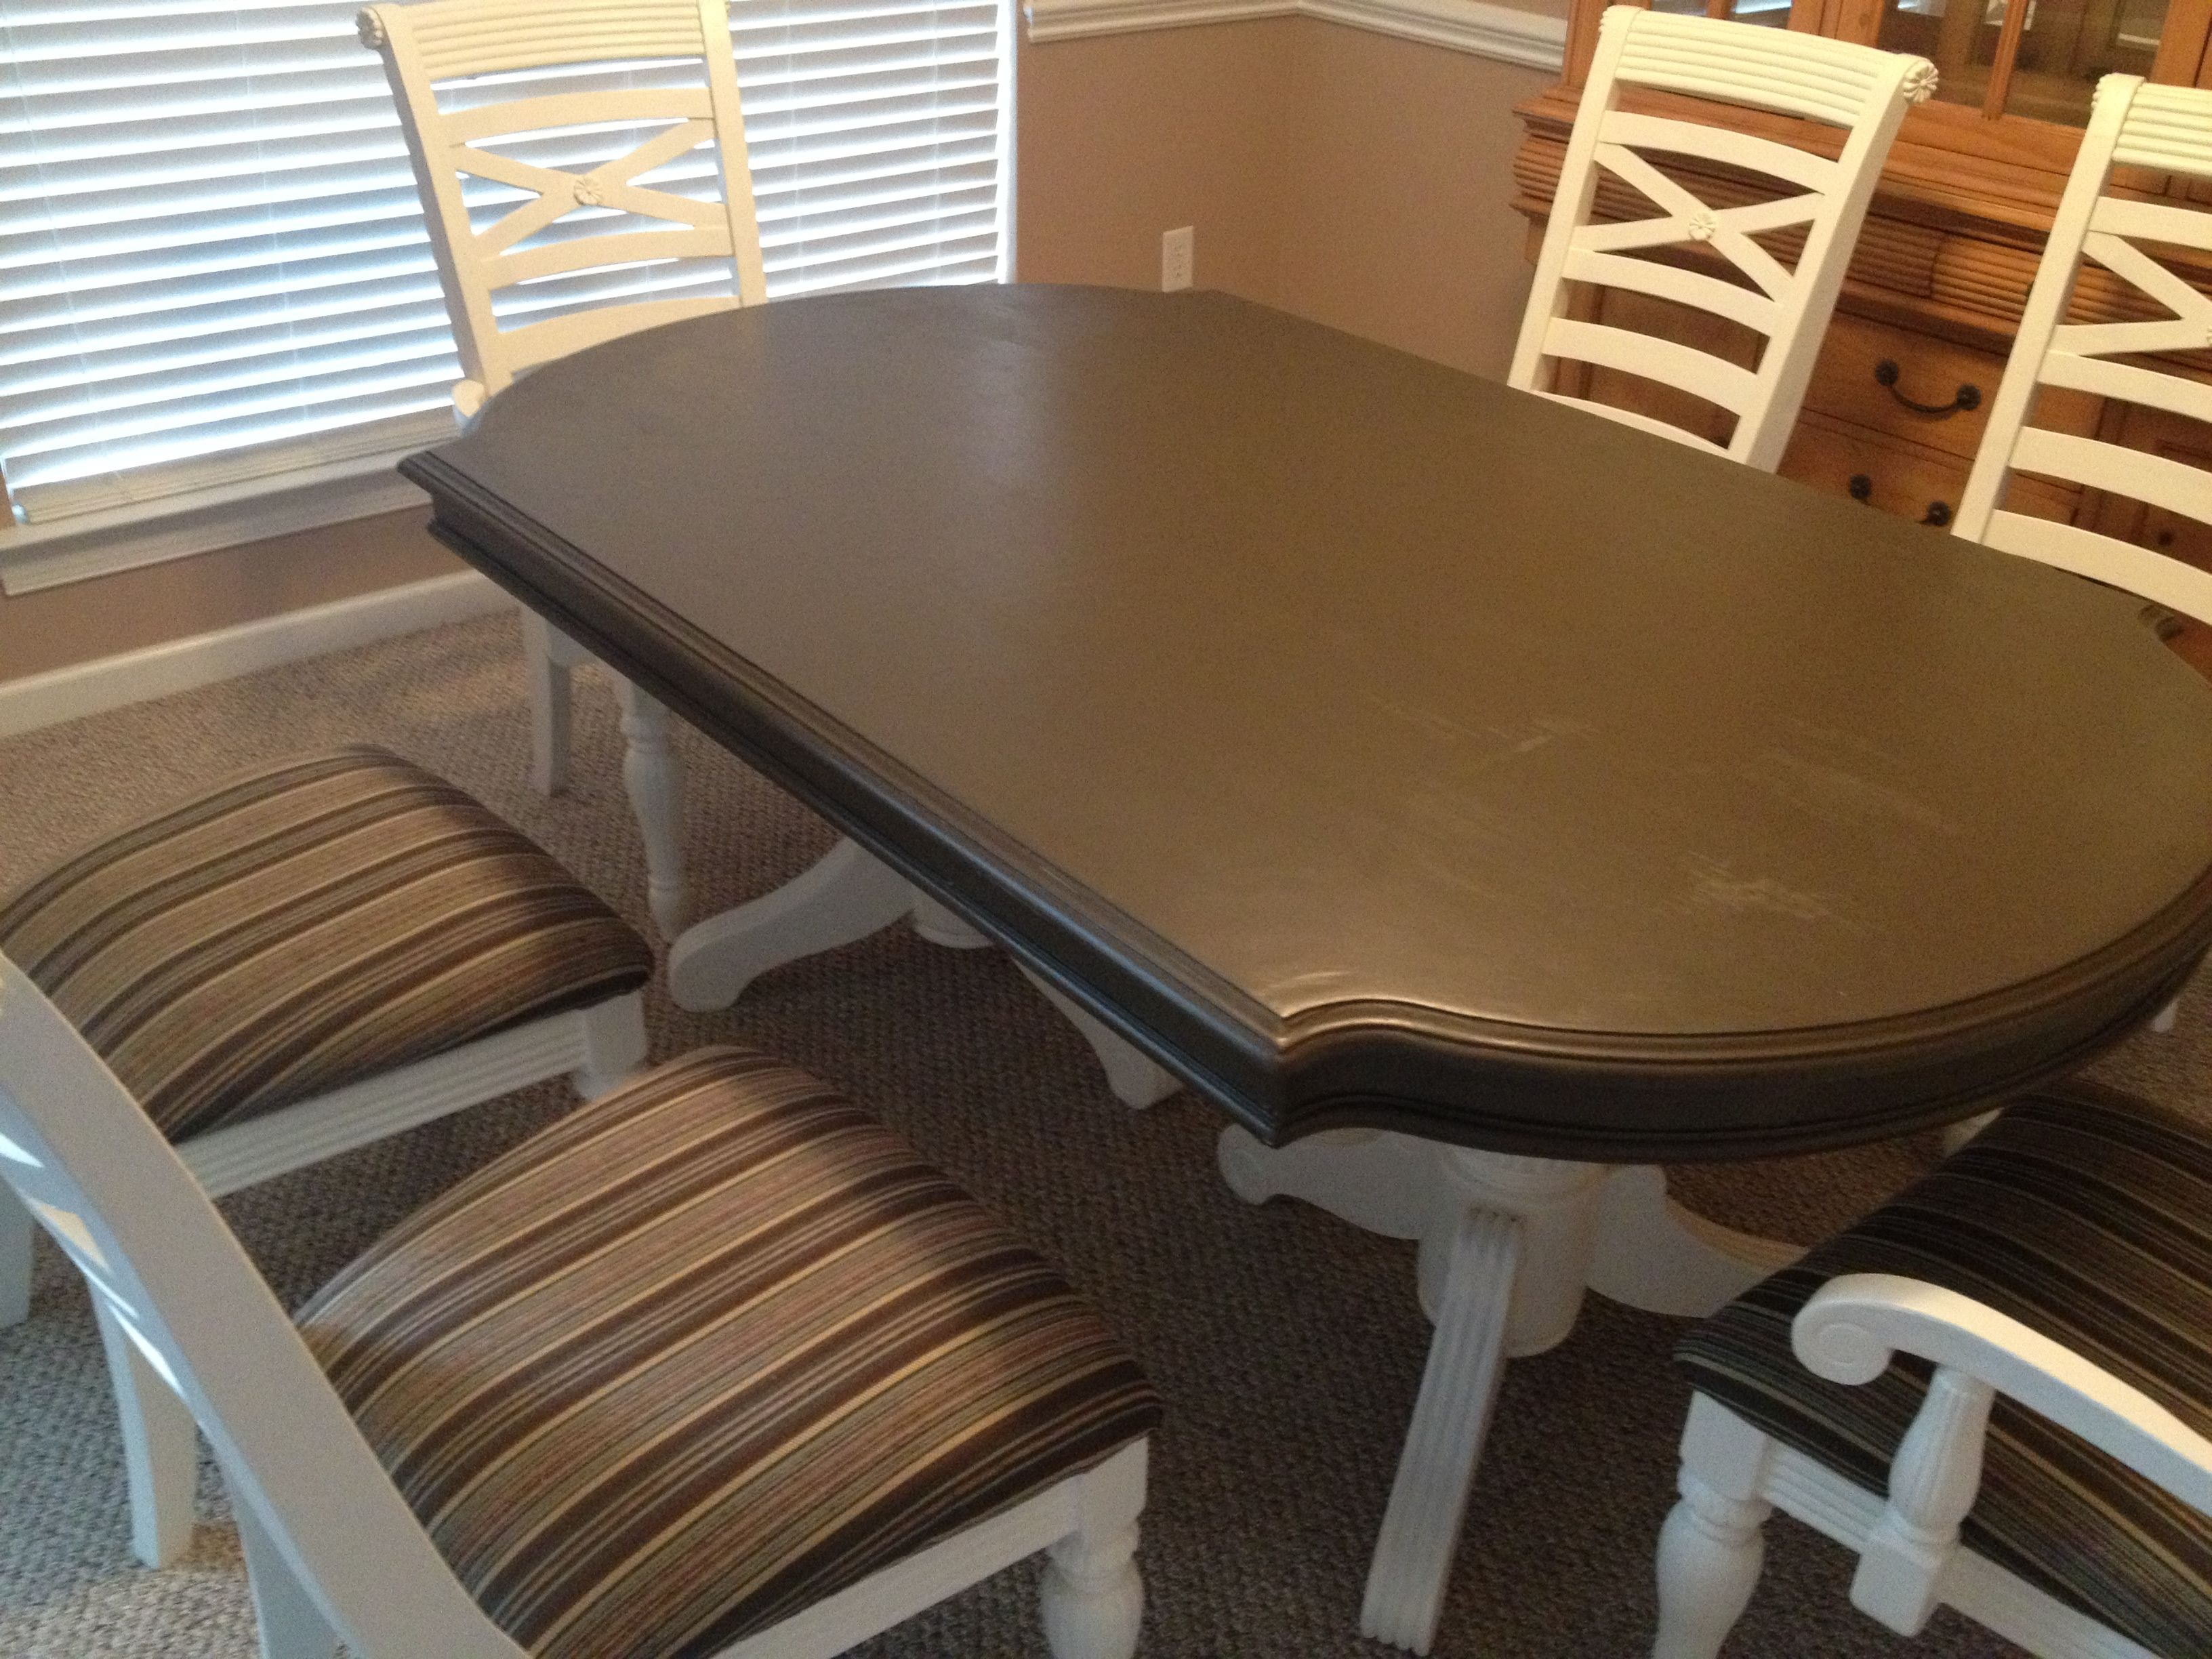 DIY refurbish of an old dining room table and chairs ...